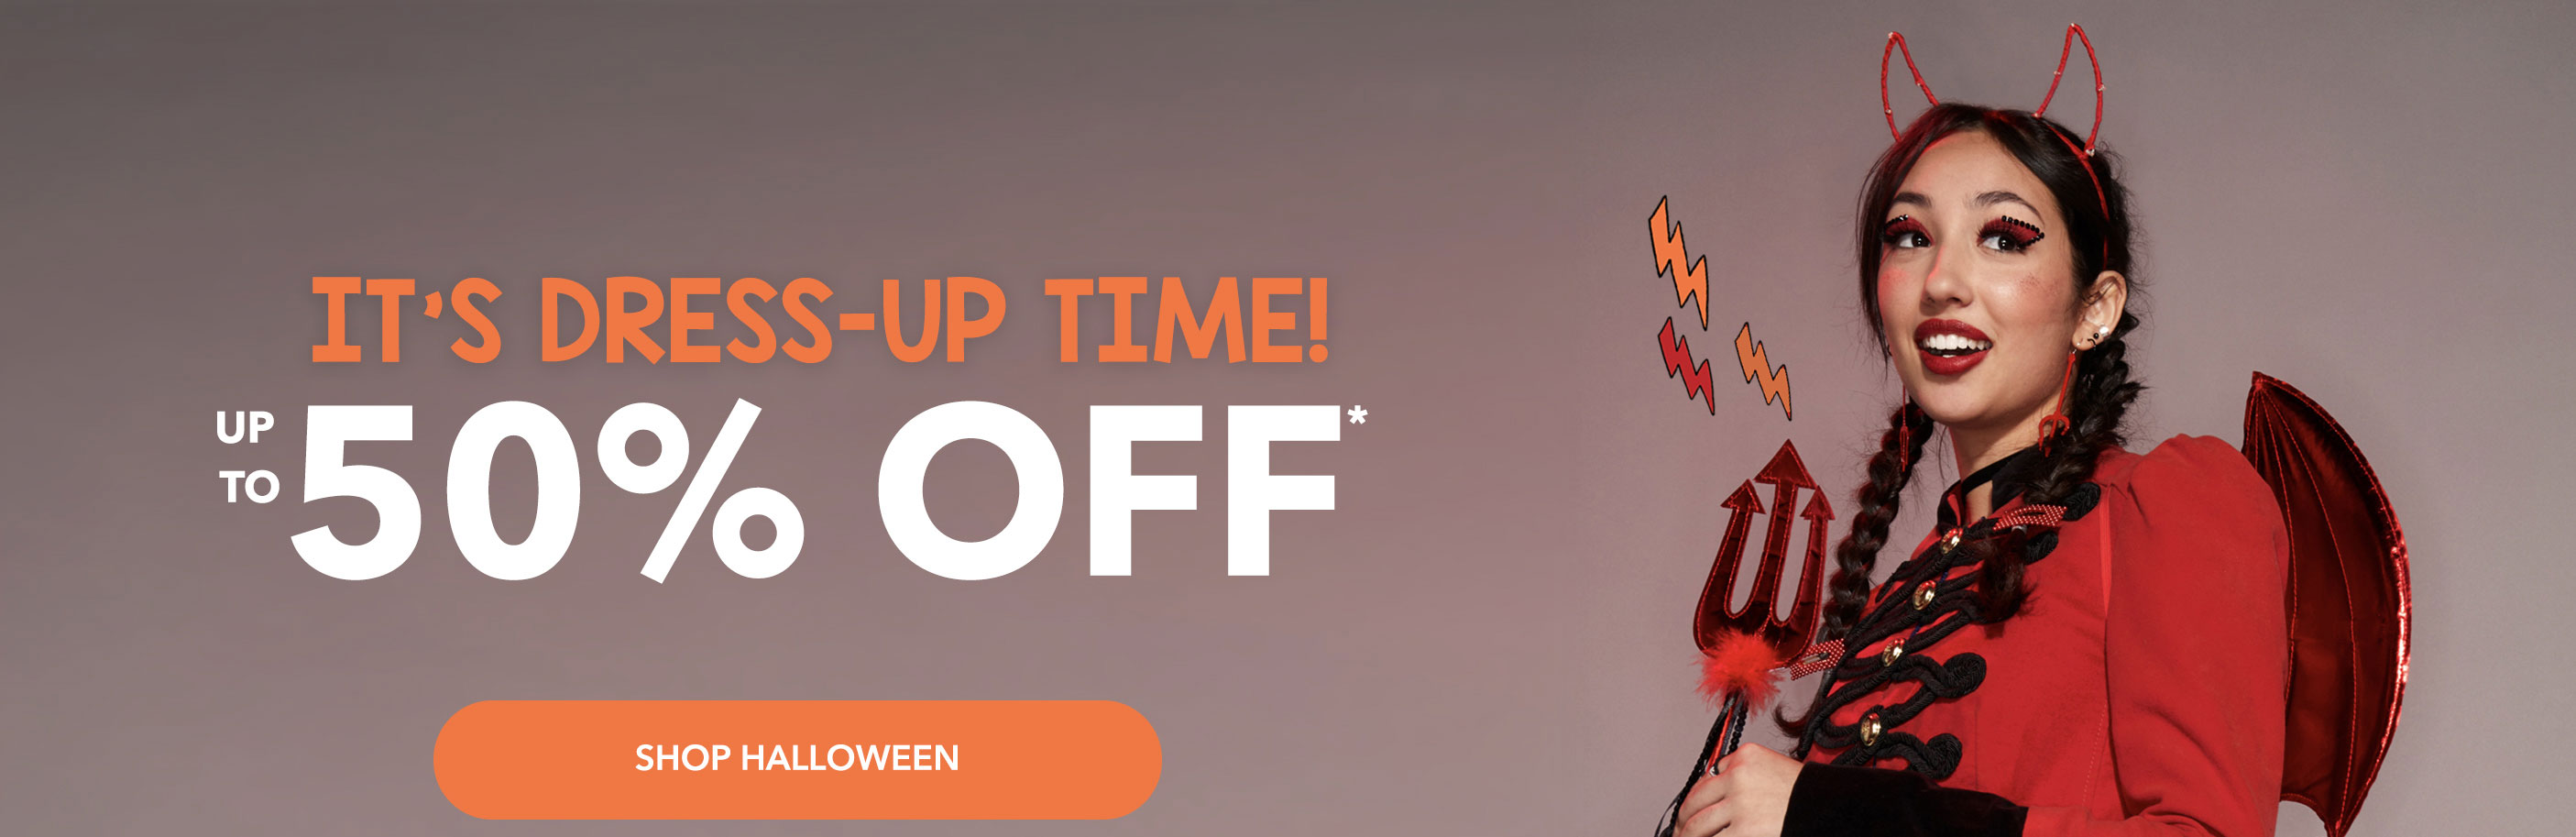 It's dress-up time! The cutest autumn looks for up to 50% OFF*. Online exclusive.  SHOP HALLOWEEN